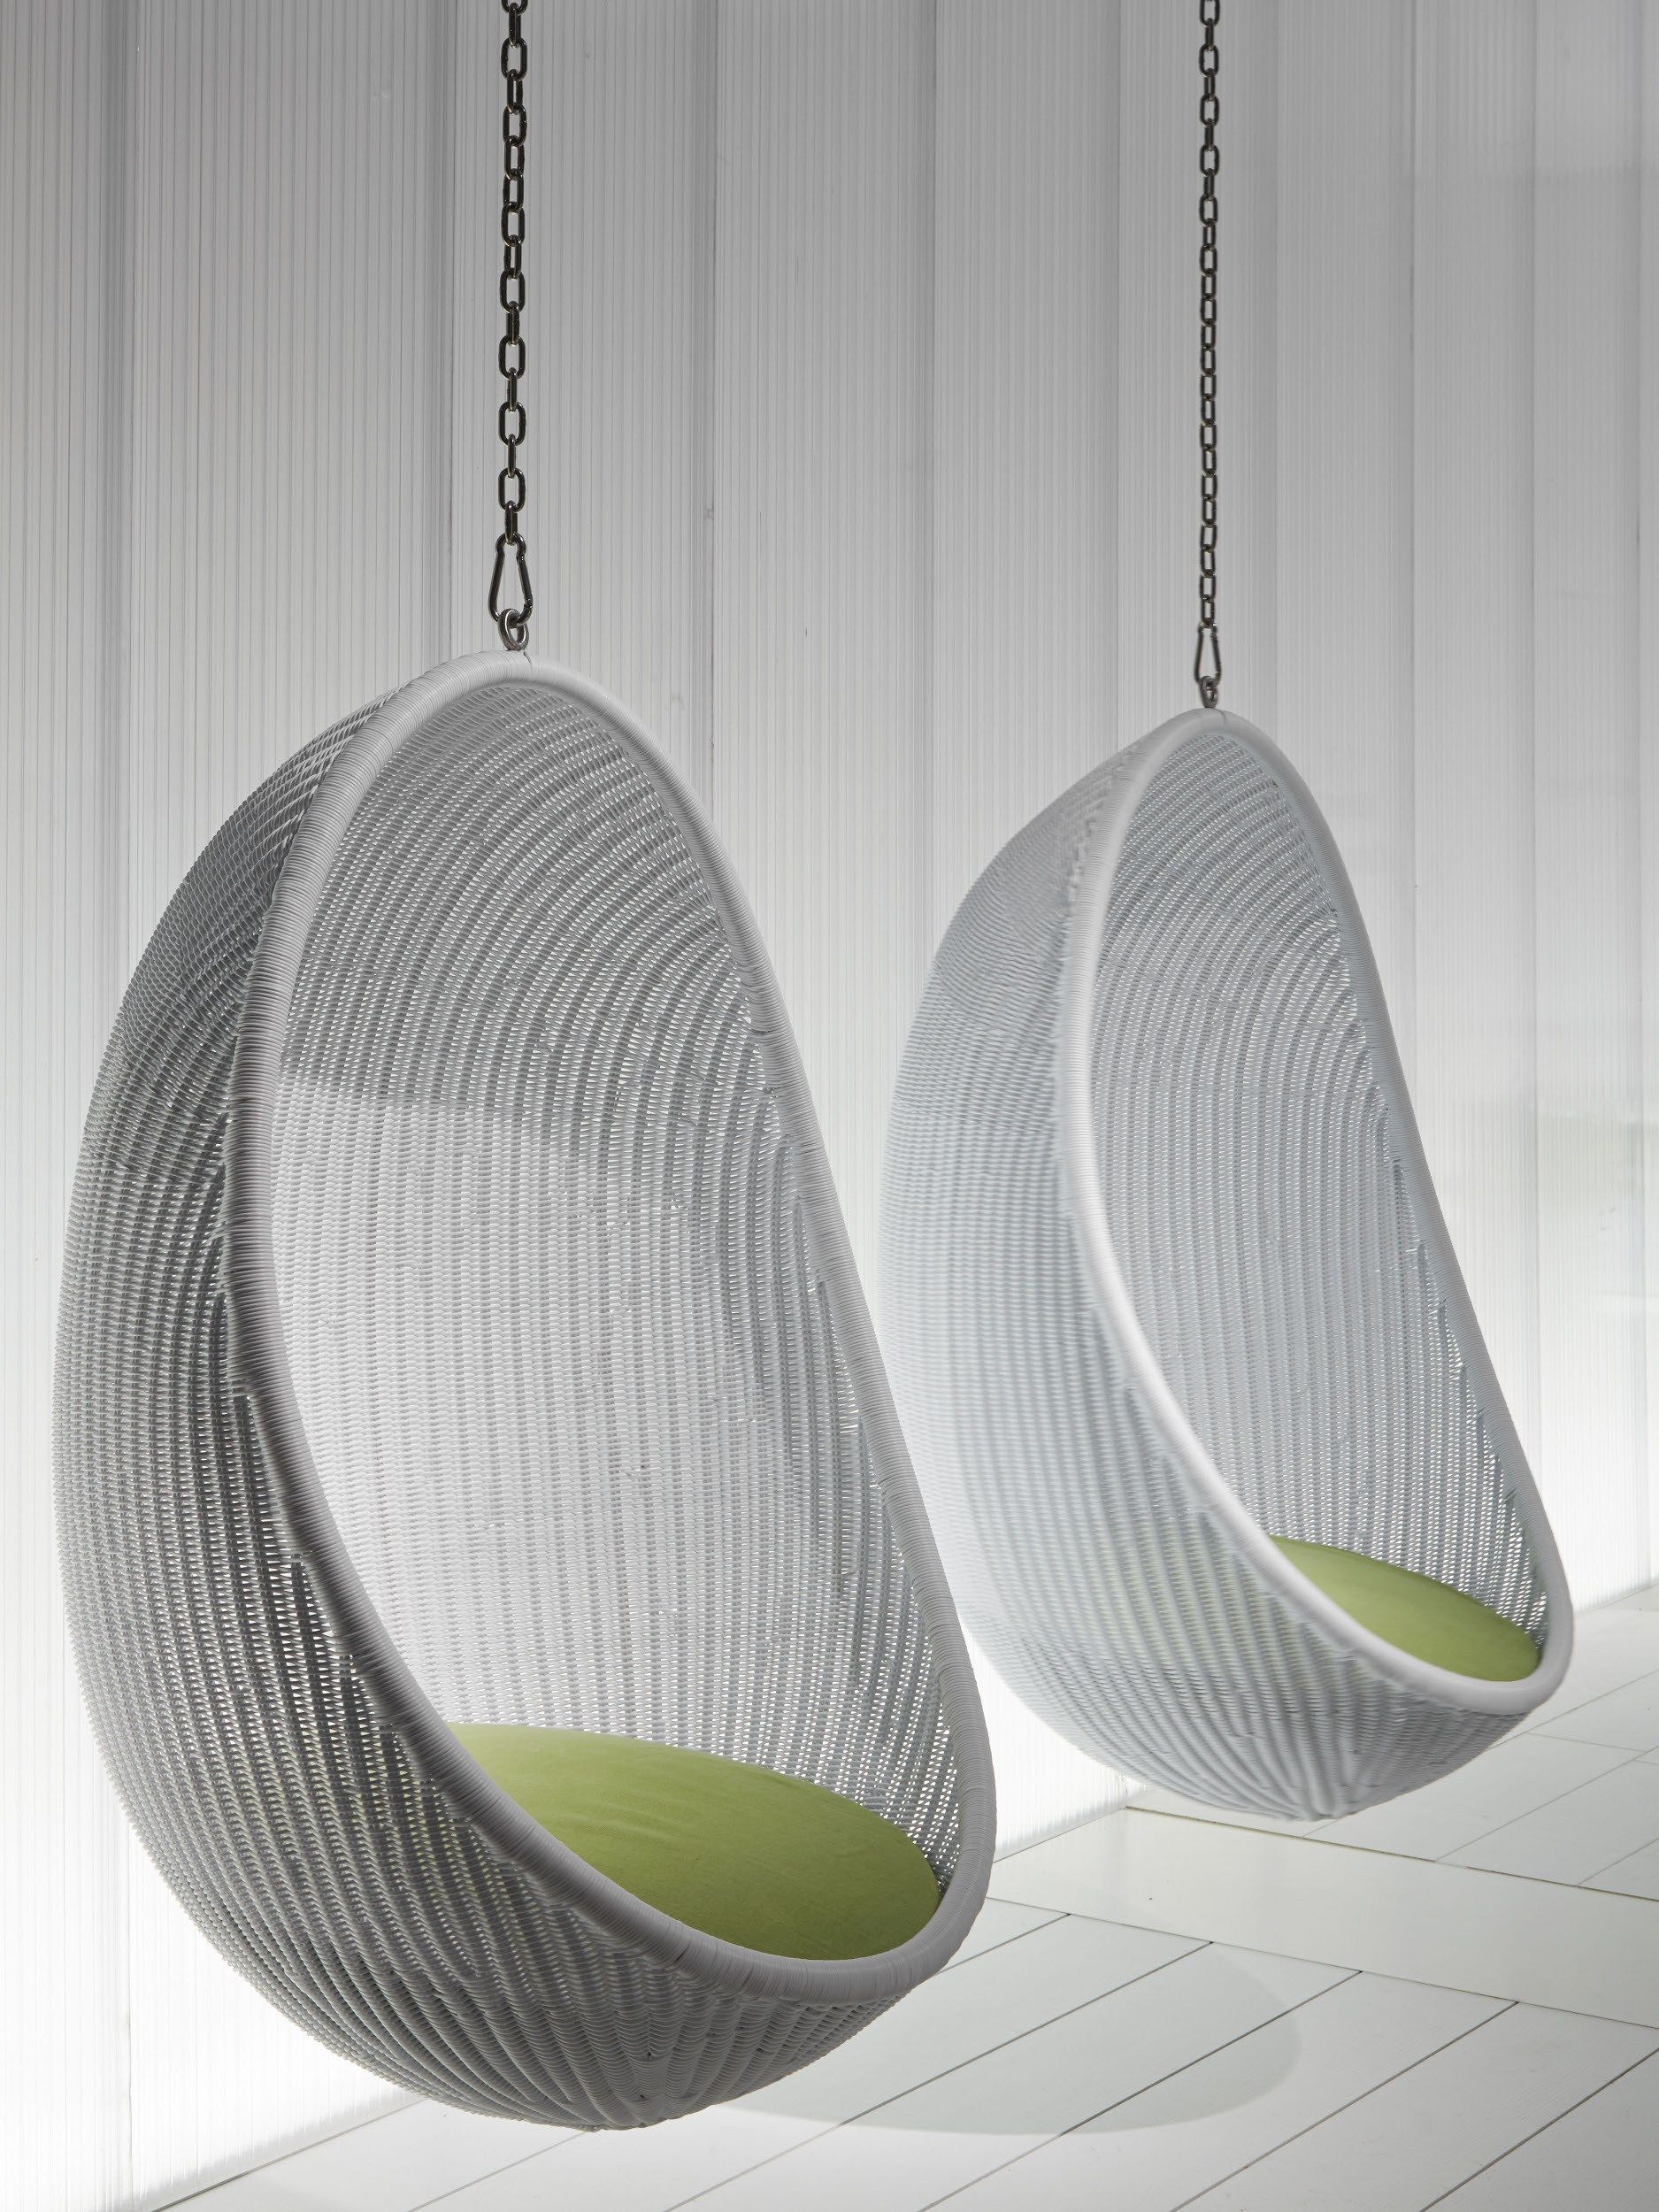 Superior ... Hanging Egg Chair With White Wooden Wall Panels As Decorate Classy  Veranda Furnishing Designs. Indoor Hanging Chair, Cocoon Chair Ikea, Hanging  Bubble ...